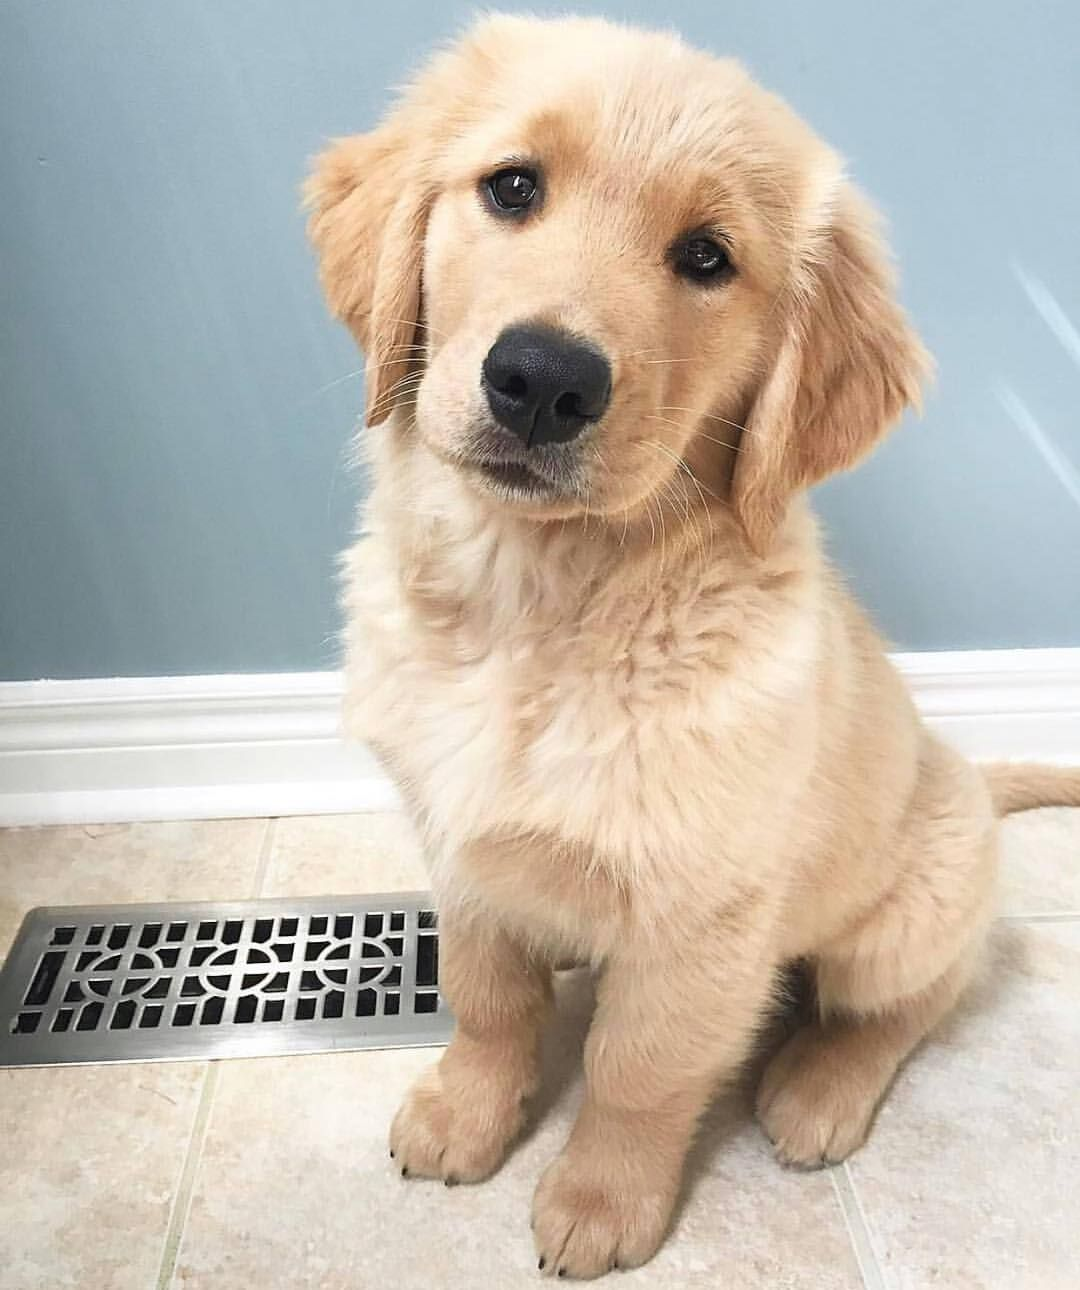 Golden Retriever Puppy Tap The Pin For The Most Adorable Pawtastic Fur Baby Apparel You Ll Love The Dog Cloth Retriever Welpen Susse Hunde Kleidung Fur Hunde